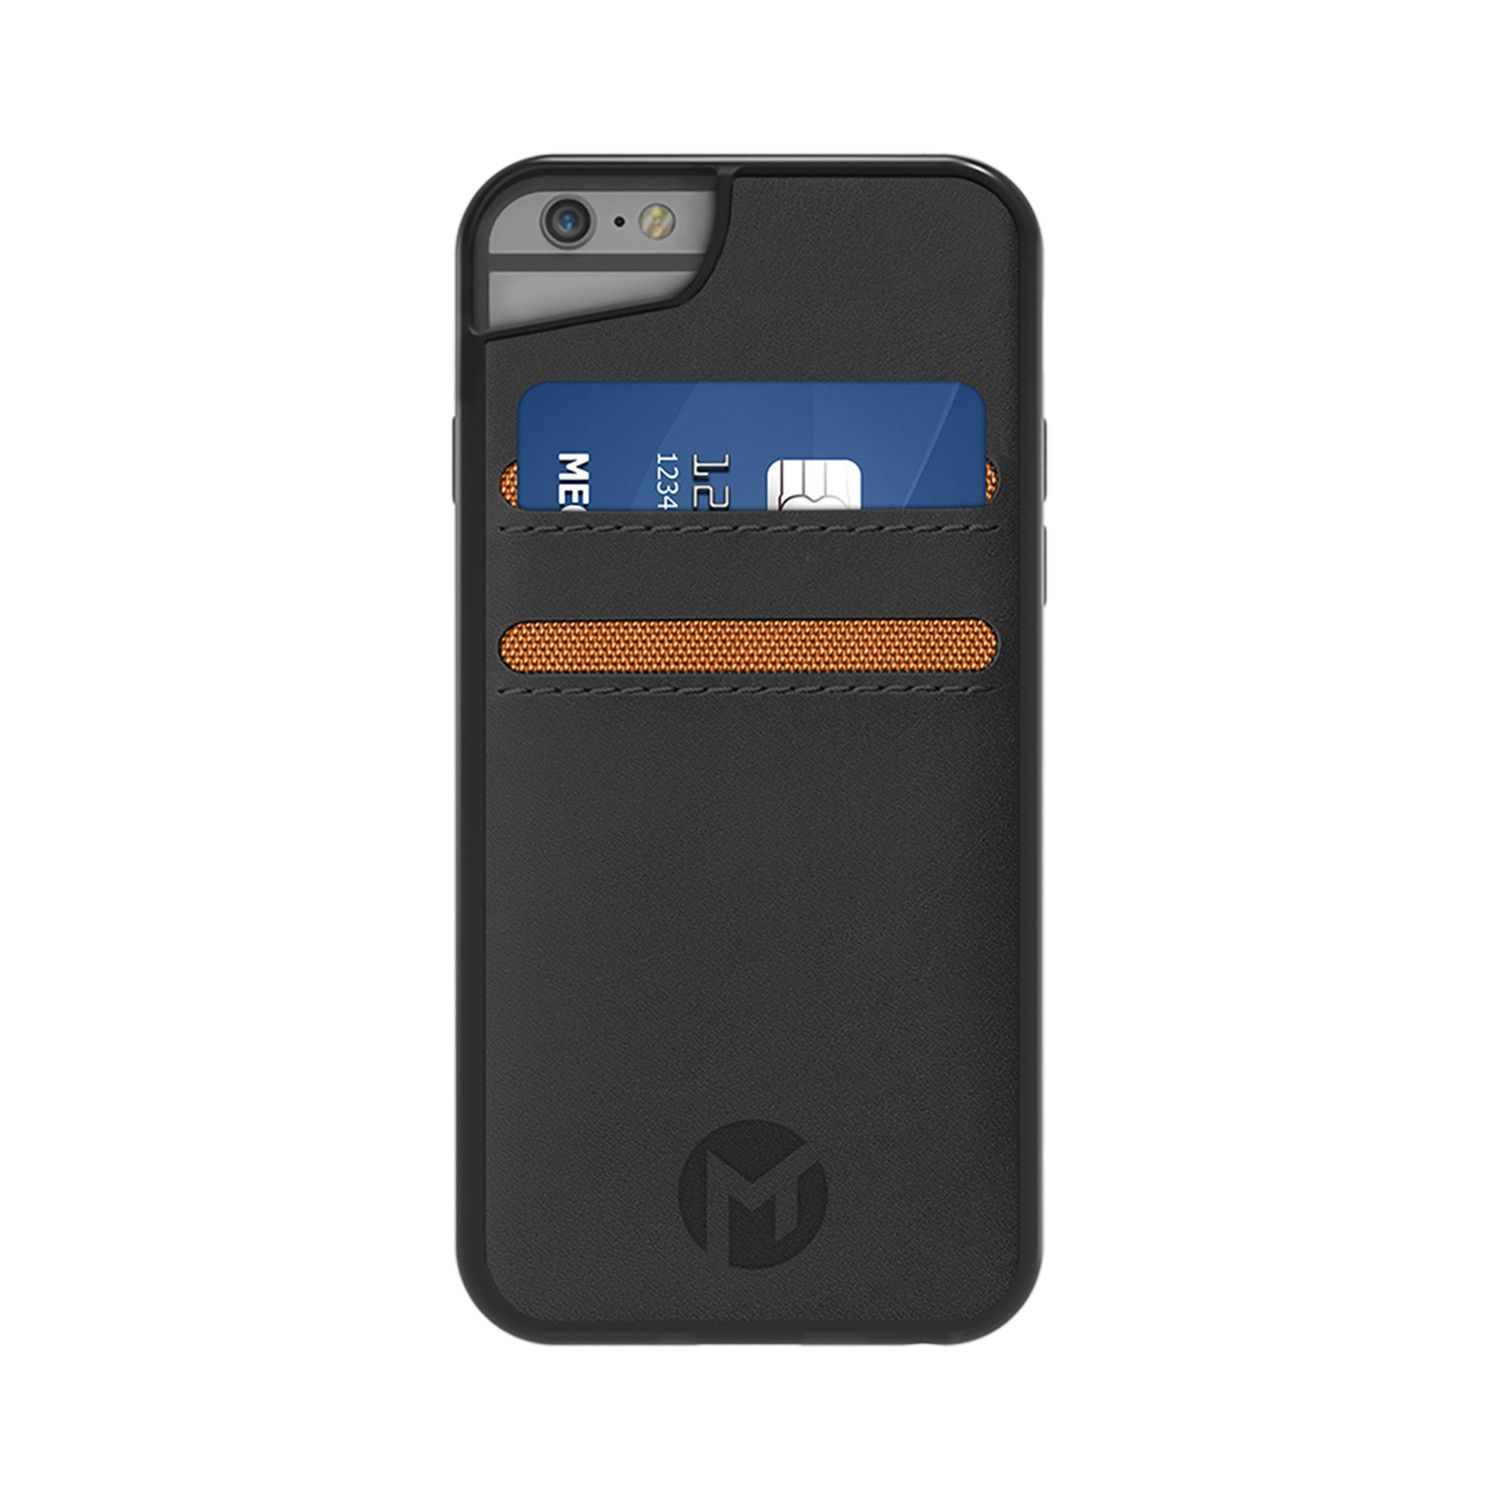 competitive price 2b8eb ac113 Anti-Gravity Case + Megaback Wallet Combo Pack | Tech Accessories ...